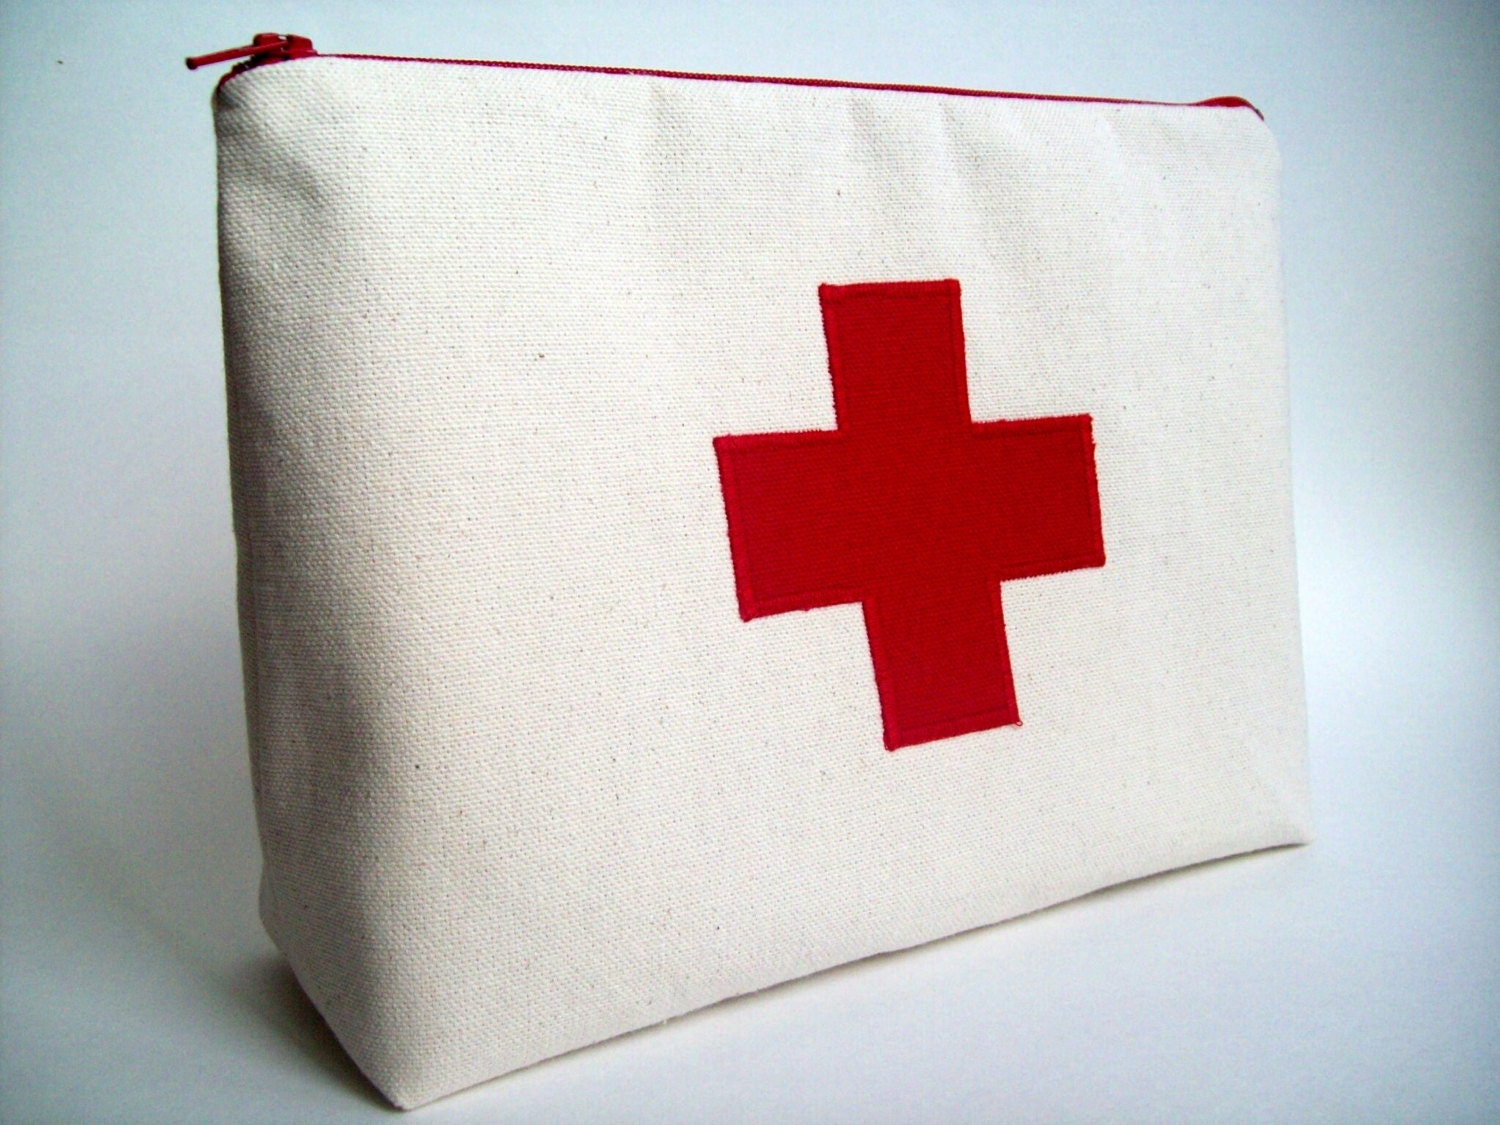 Red Cross Medicine Pouch First Aid Kit 10 X 7 X